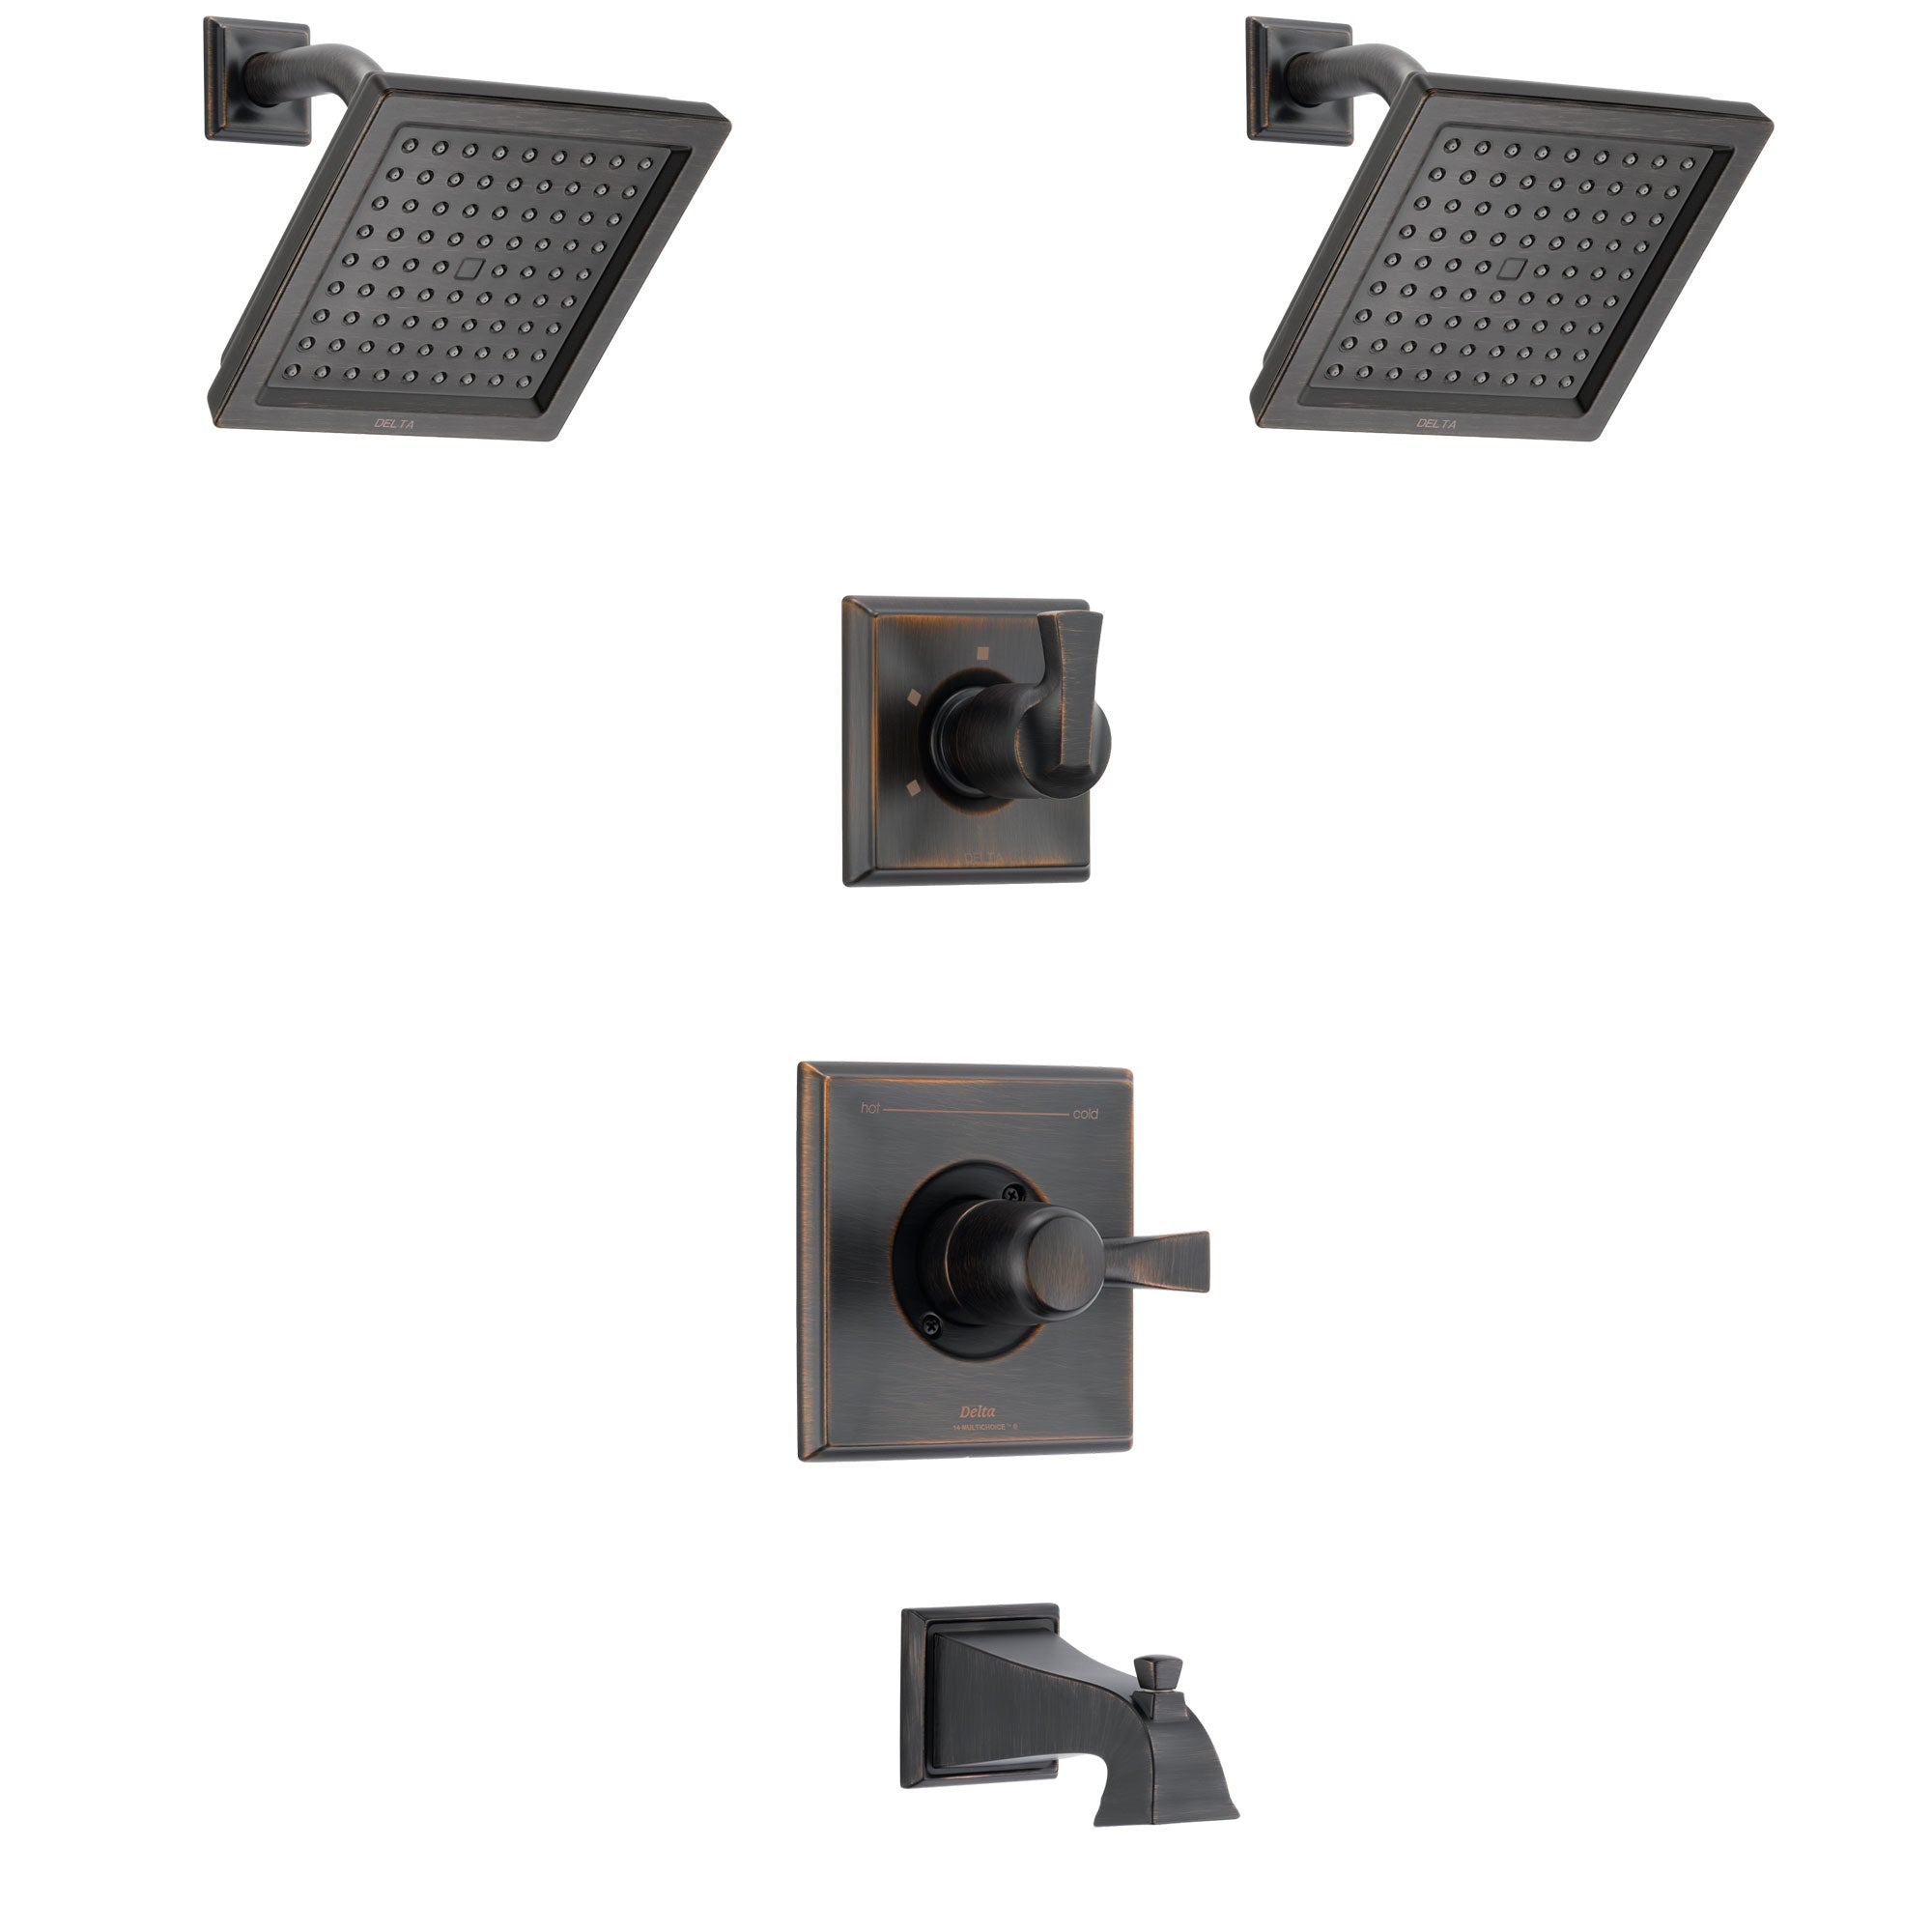 Delta Dryden Venetian Bronze Finish Tub and Shower System with Control Handle, 3-Setting Diverter, 2 Showerheads SS144511RB6